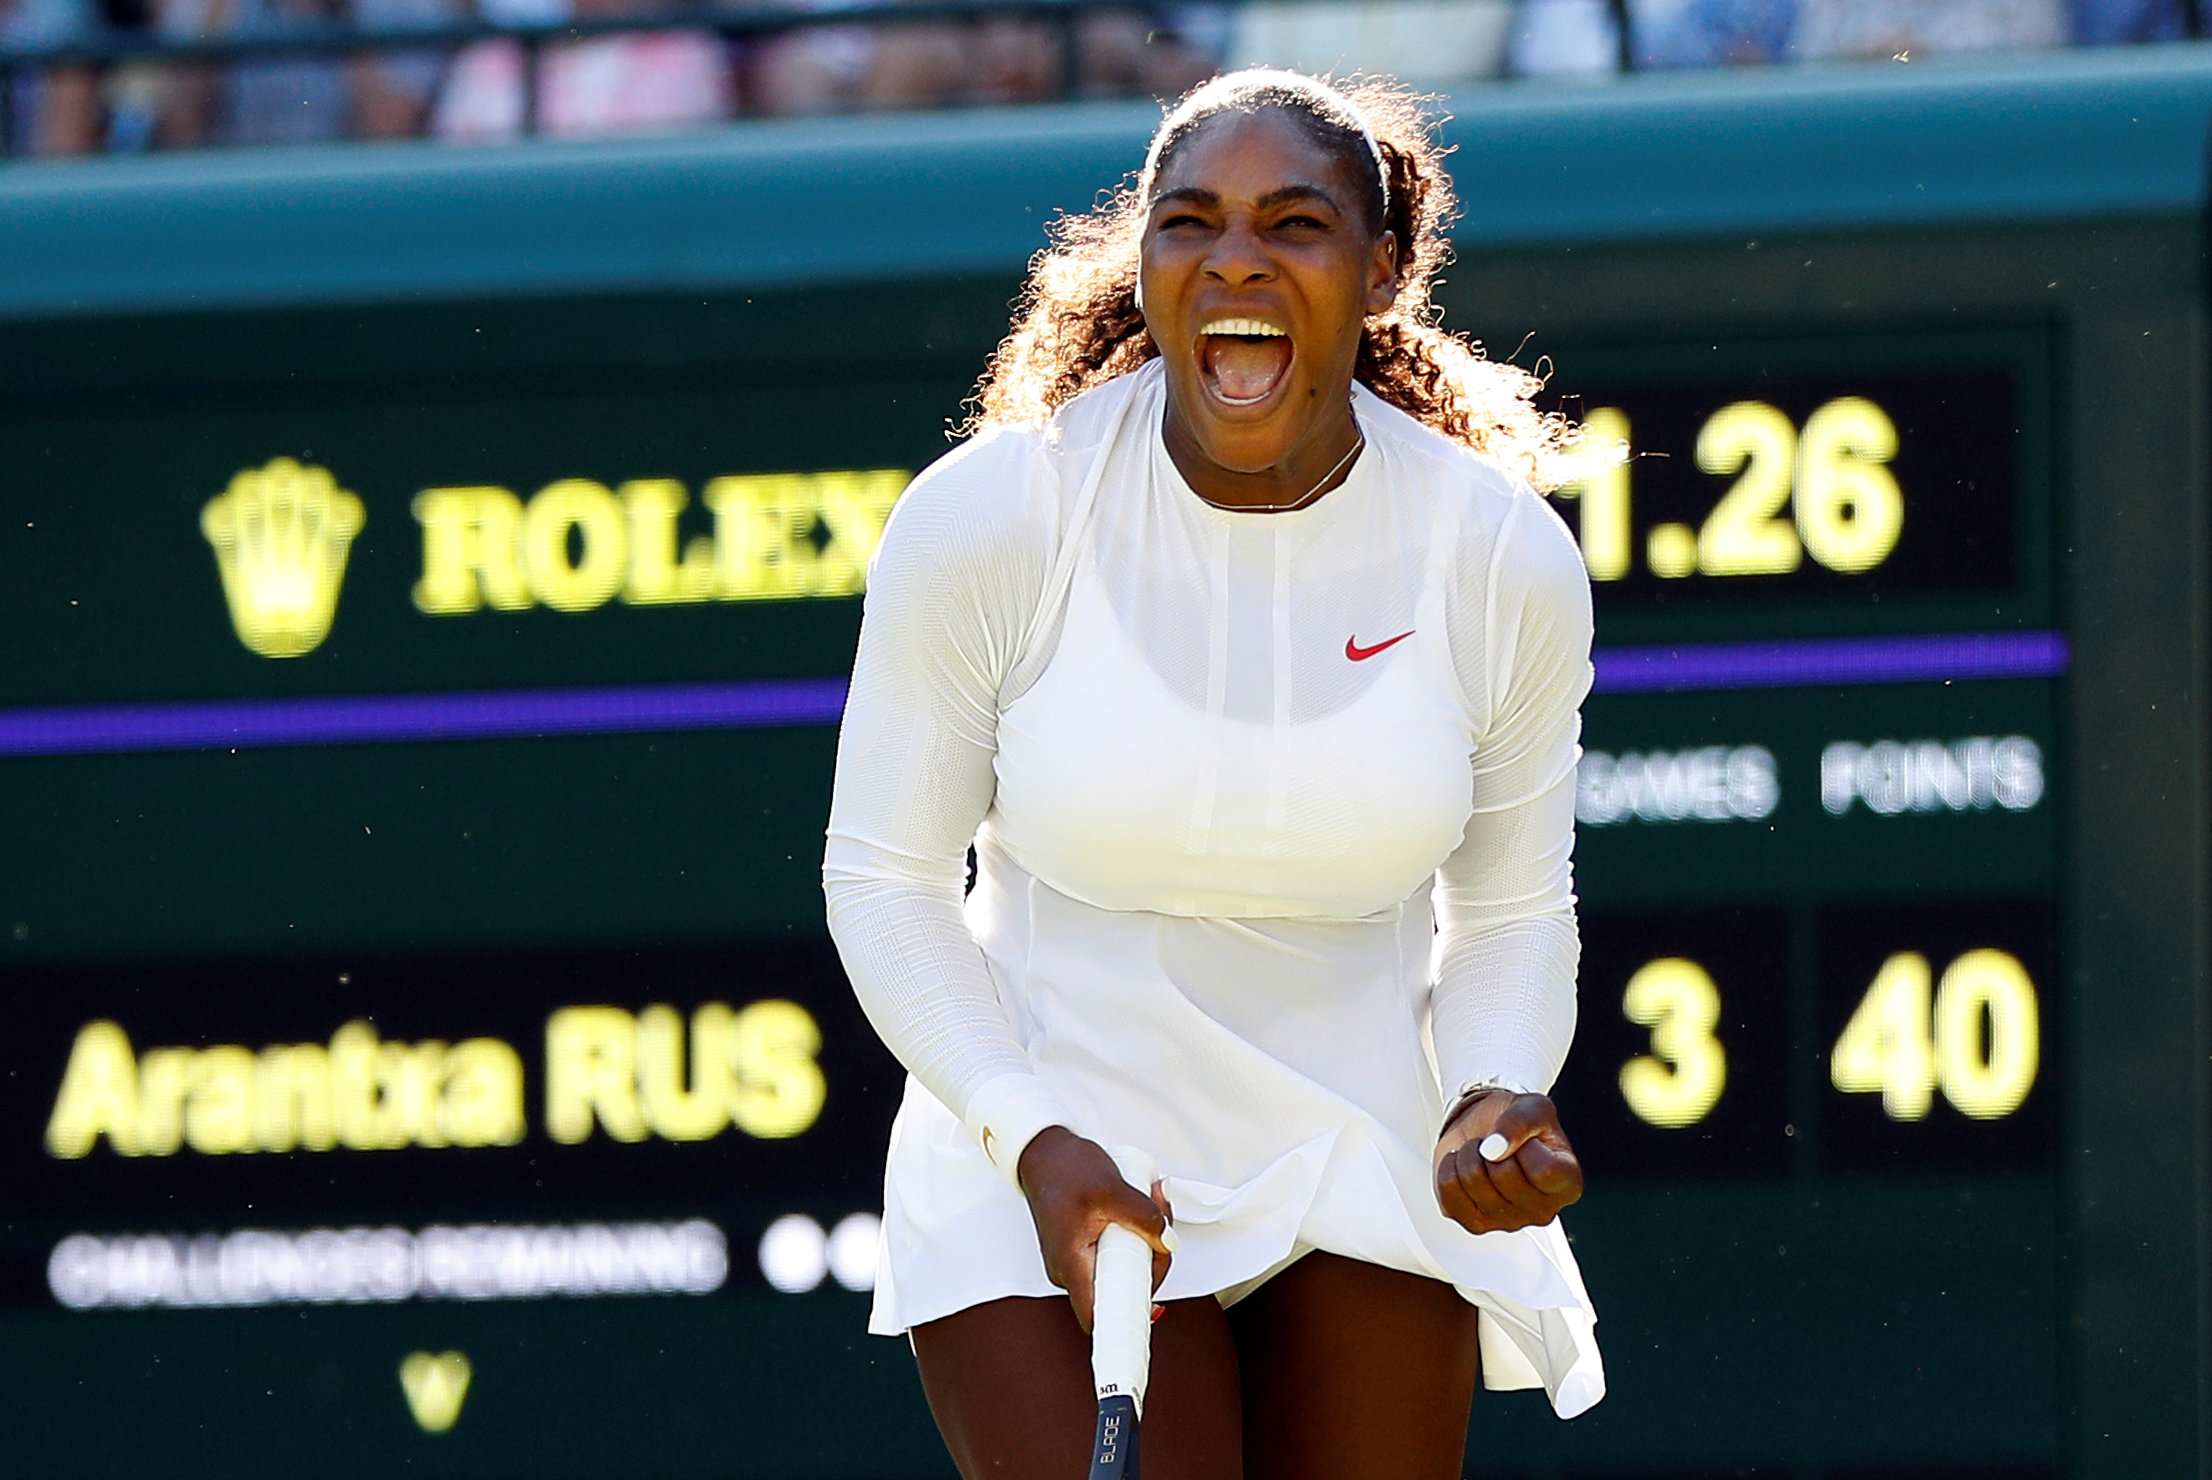 Women's Tennis Players with highest prize money earnings